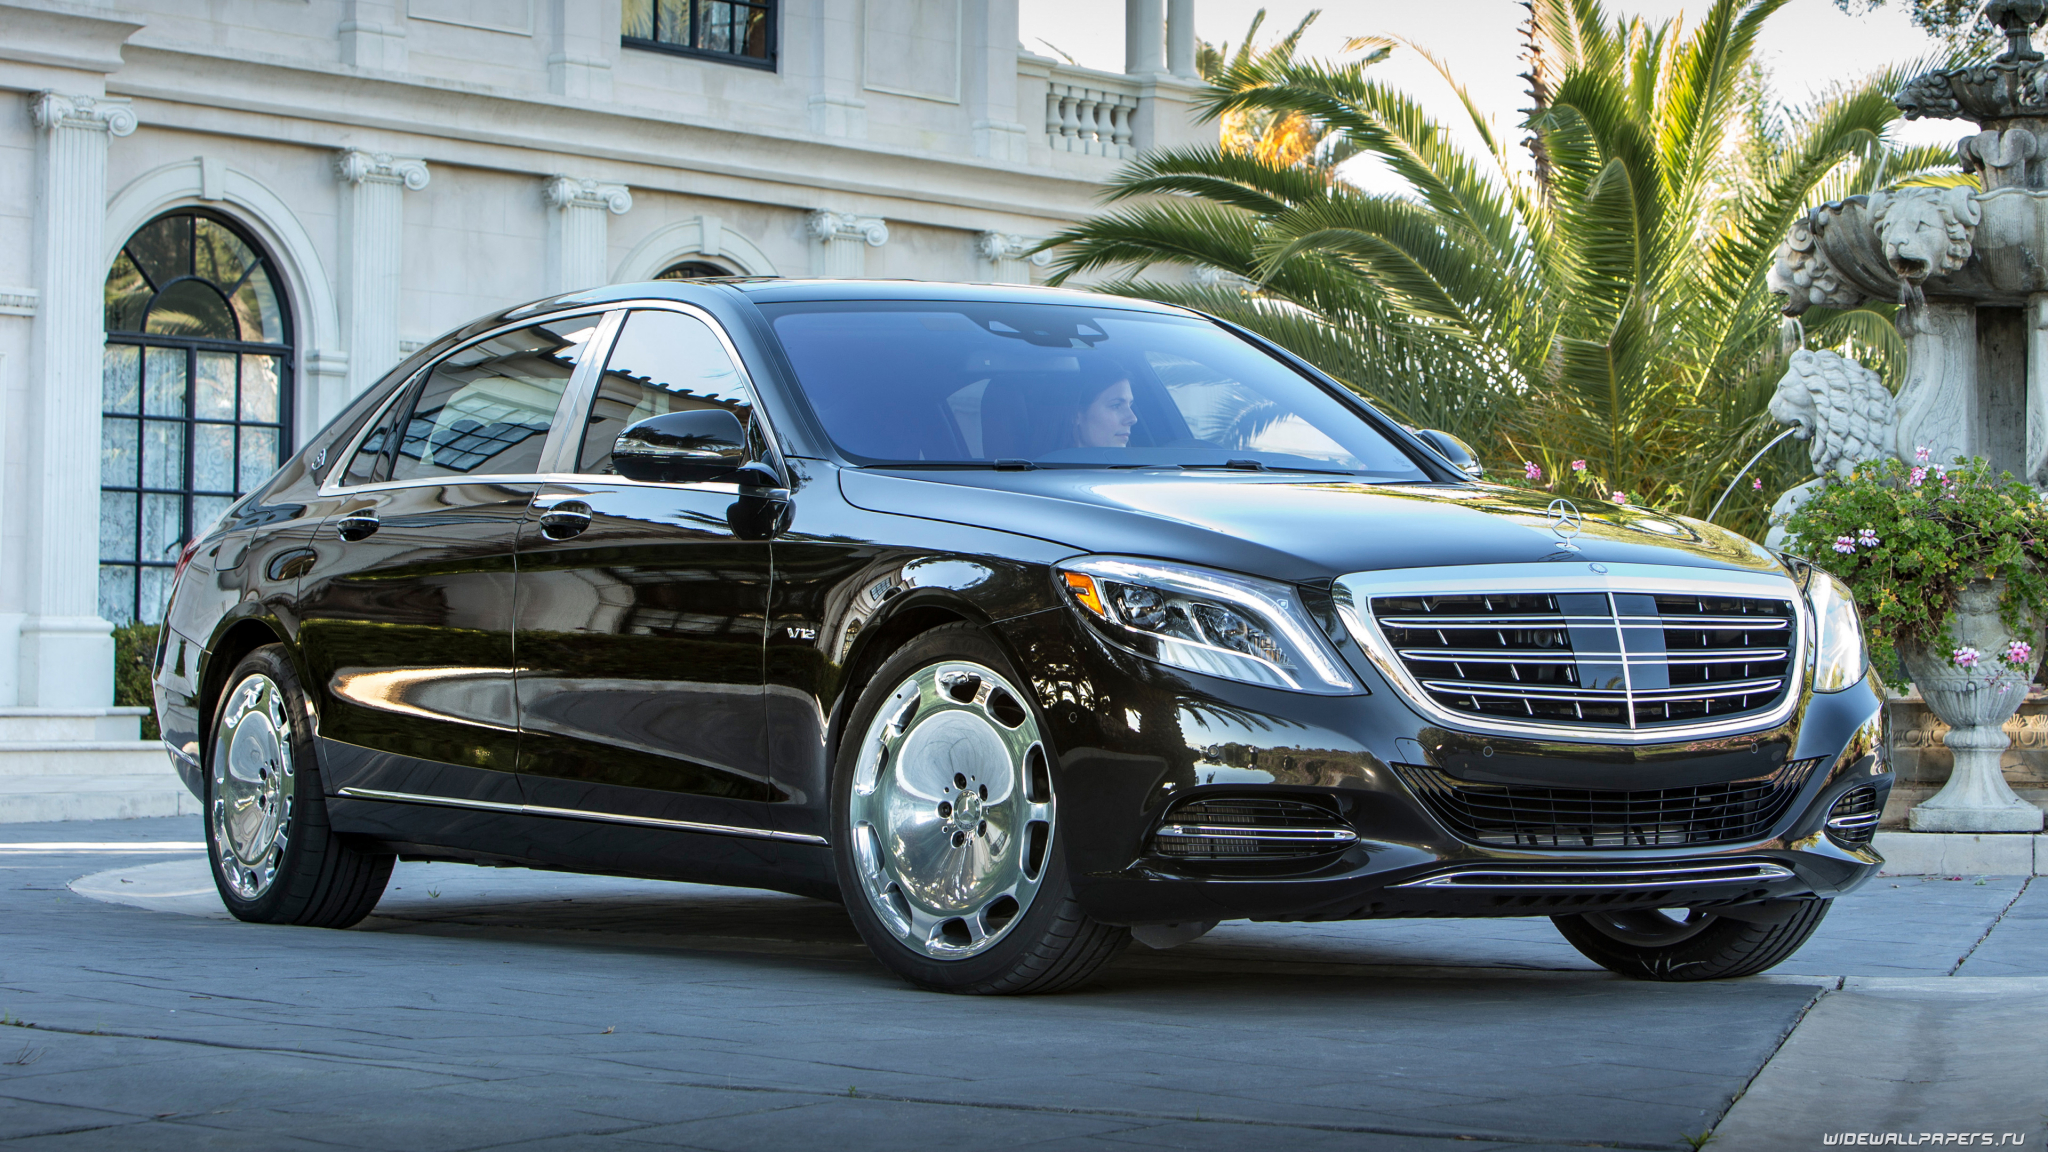 Mercedes Maybach S600 Hd Wallpapers Free Download